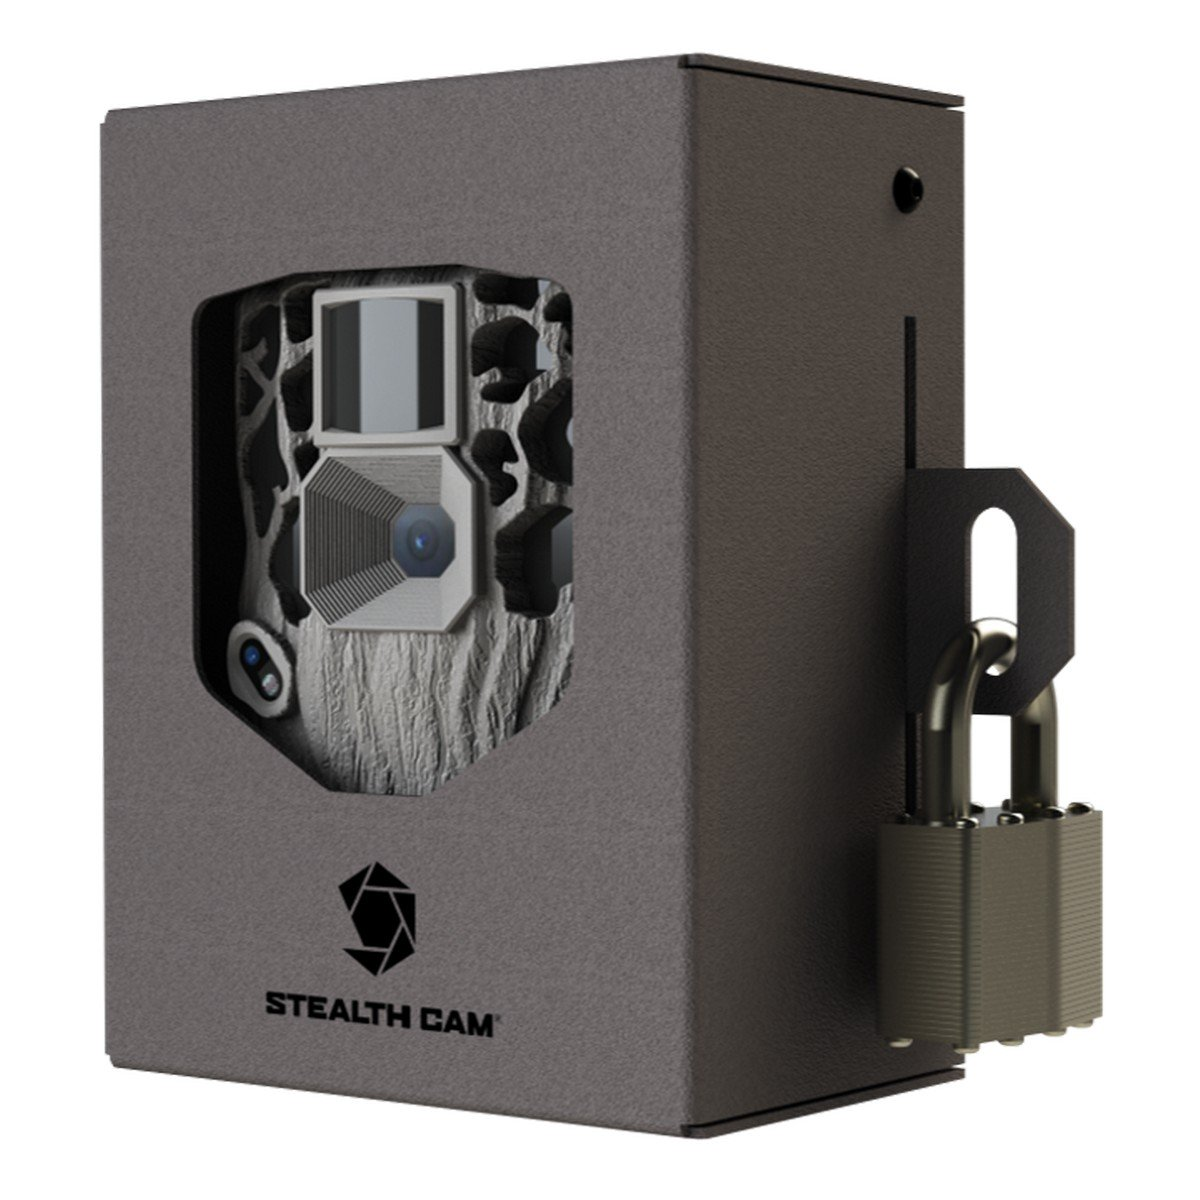 Stealth Cam Small Security Box QS QV PX